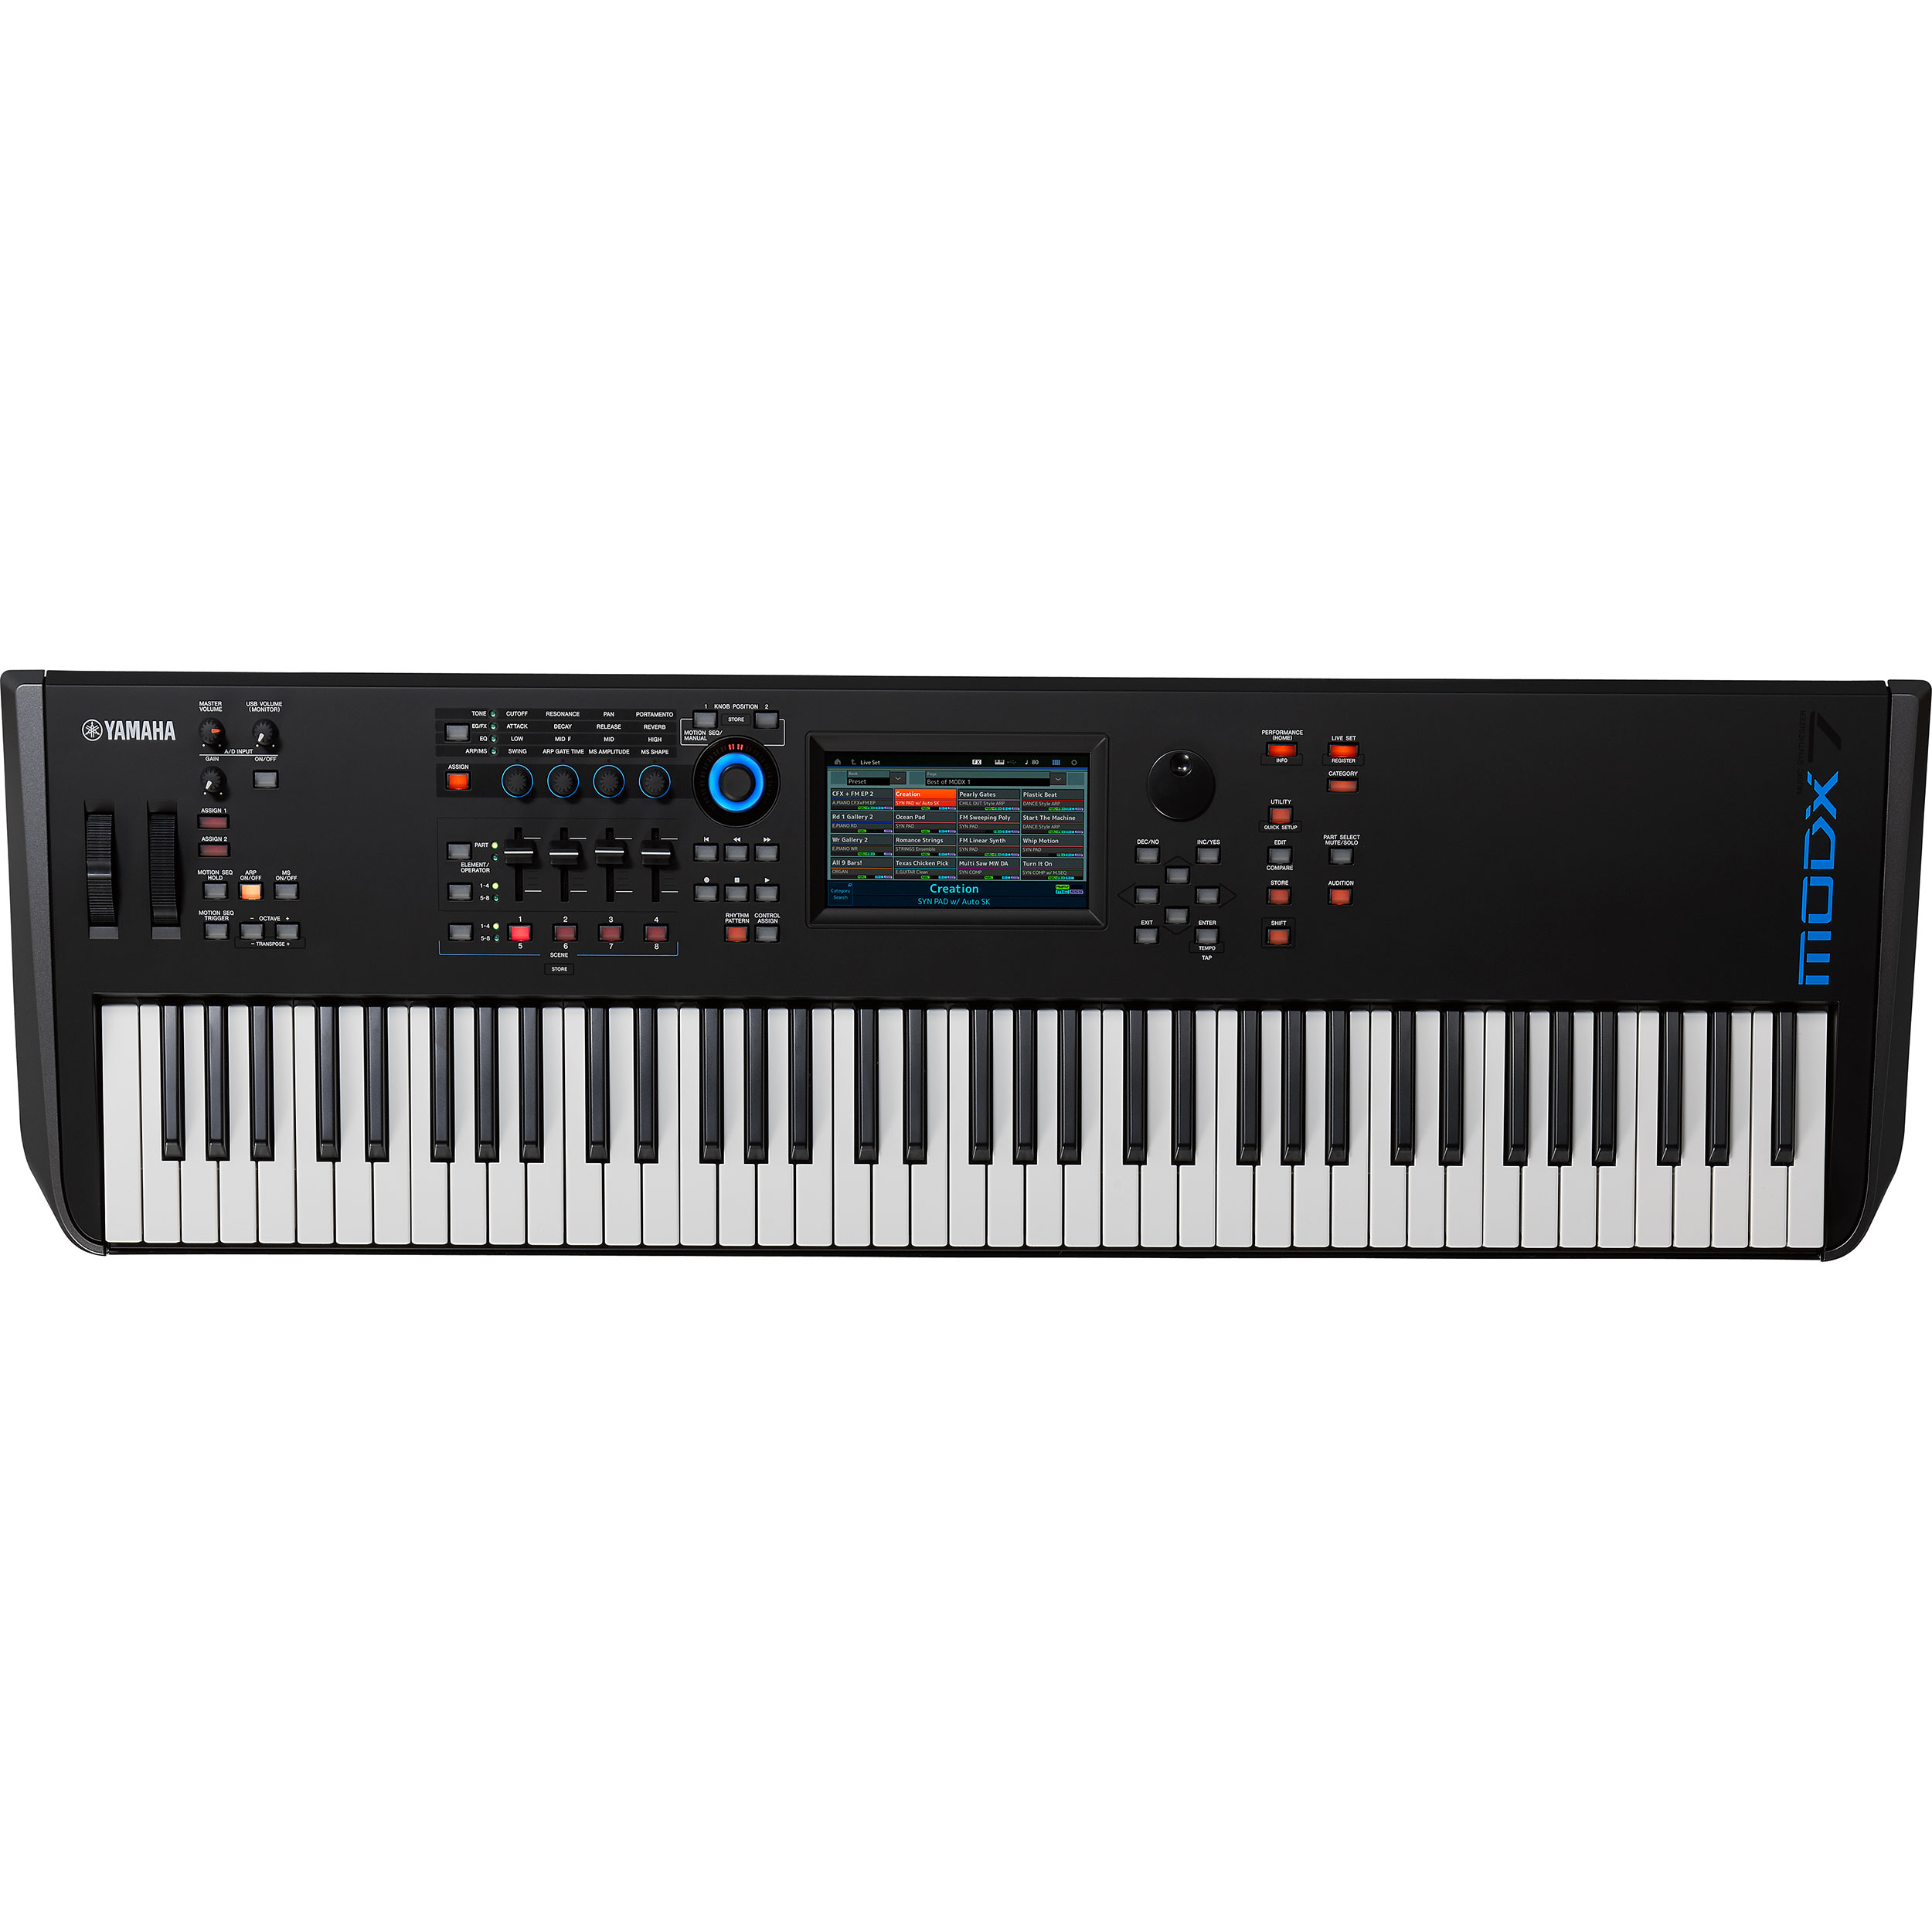 Yamaha MODX7 76-Key Midrange Synthesizer